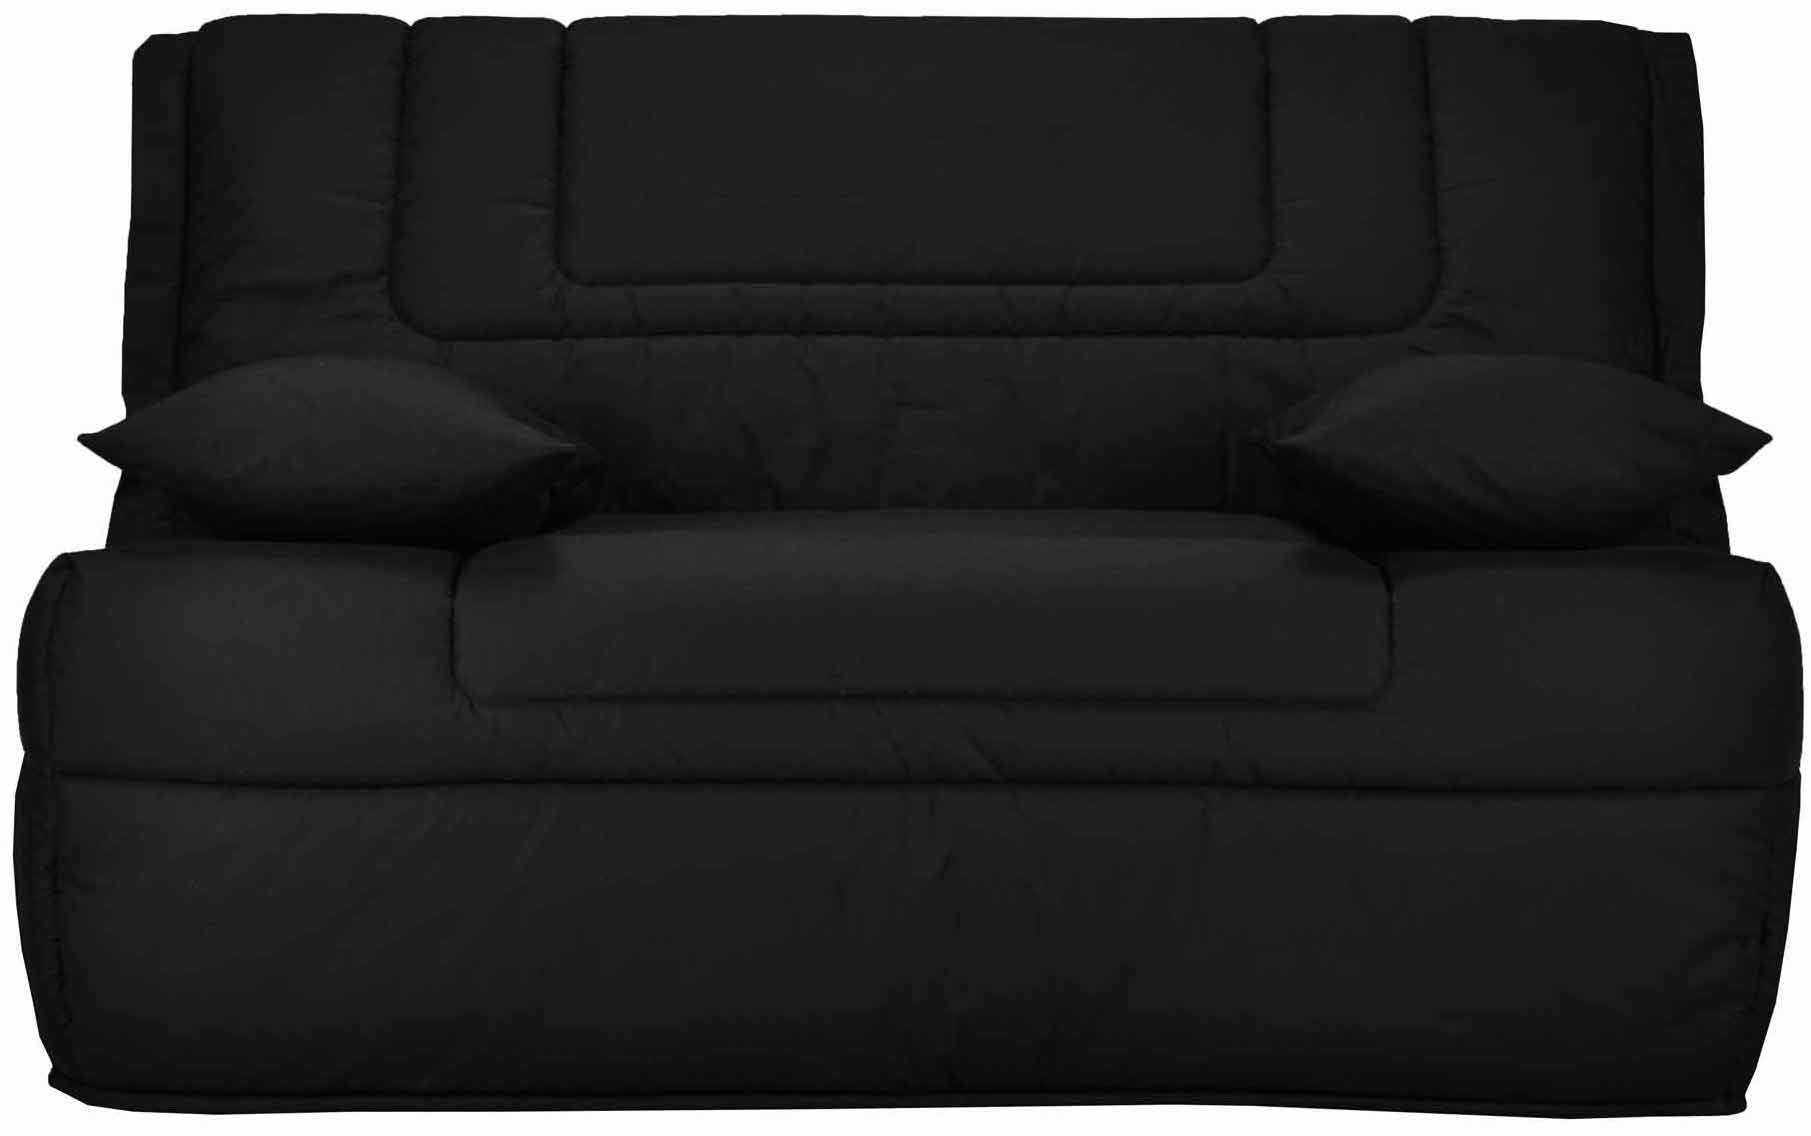 banquette bz noir 140 calamea. Black Bedroom Furniture Sets. Home Design Ideas